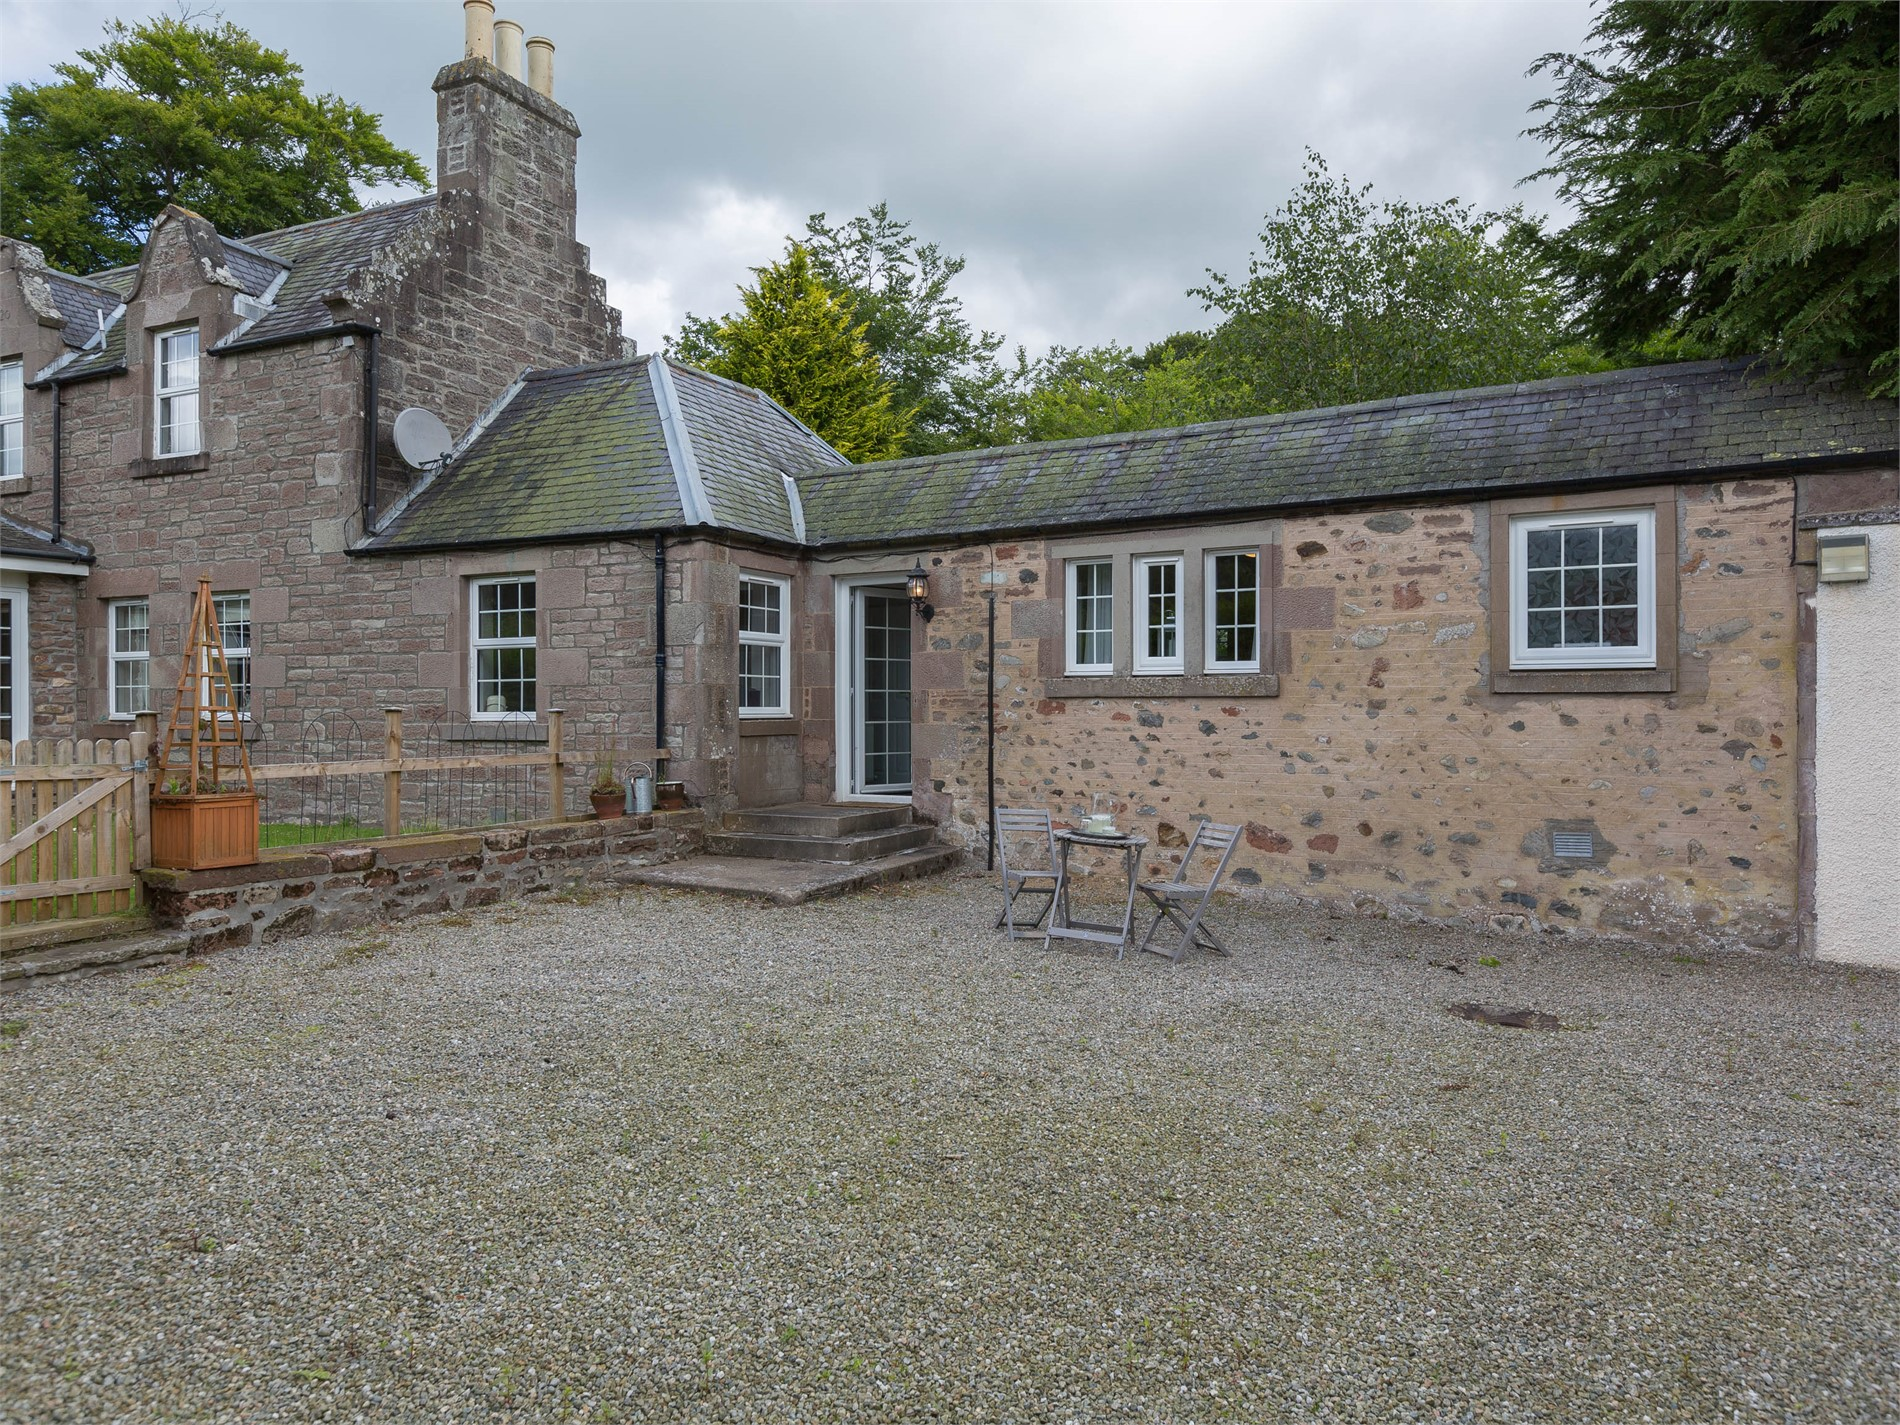 1 Bedroom Cottage in Brechin, Perthshire, Angus and Fife